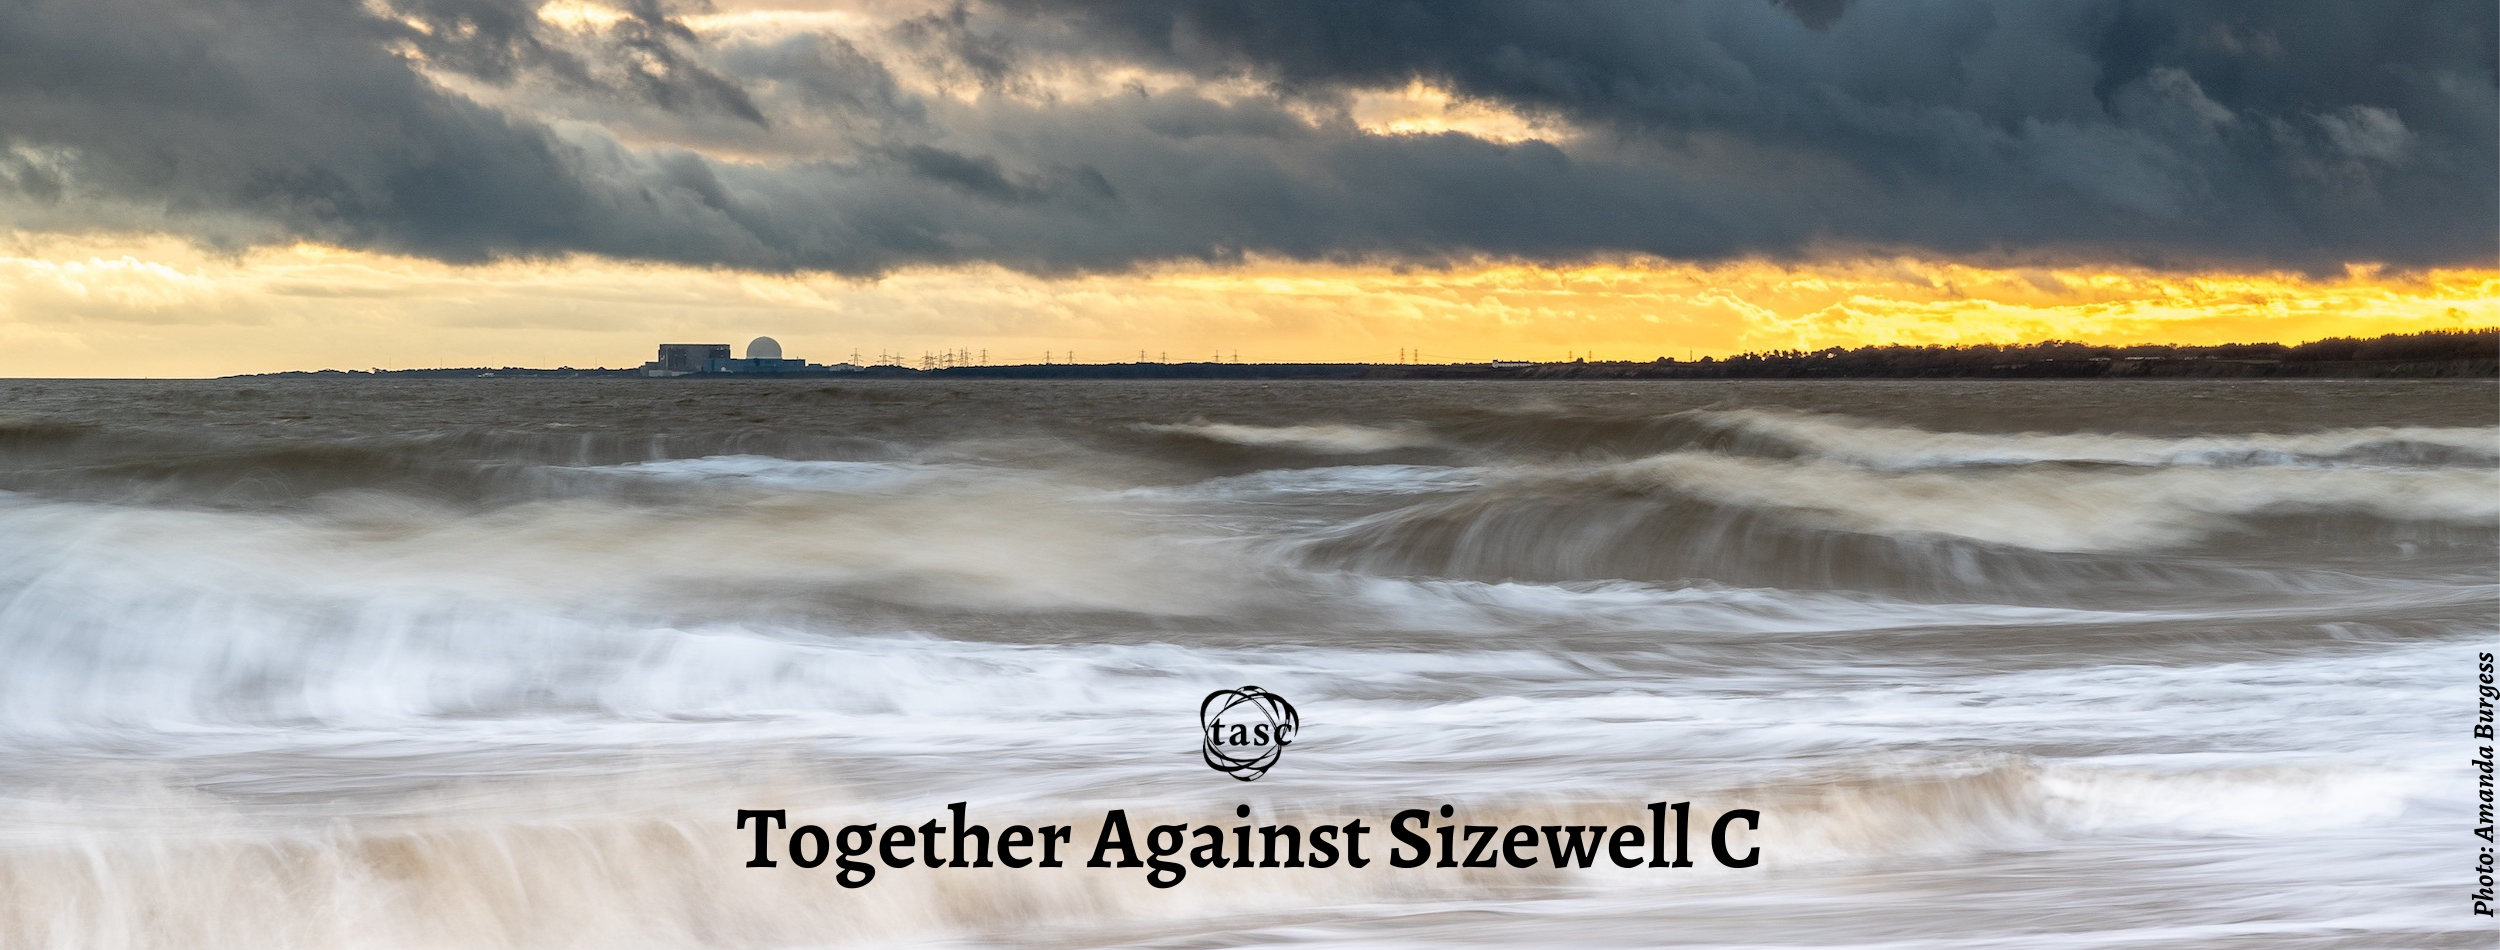 TASC - Together Against Sizewell C